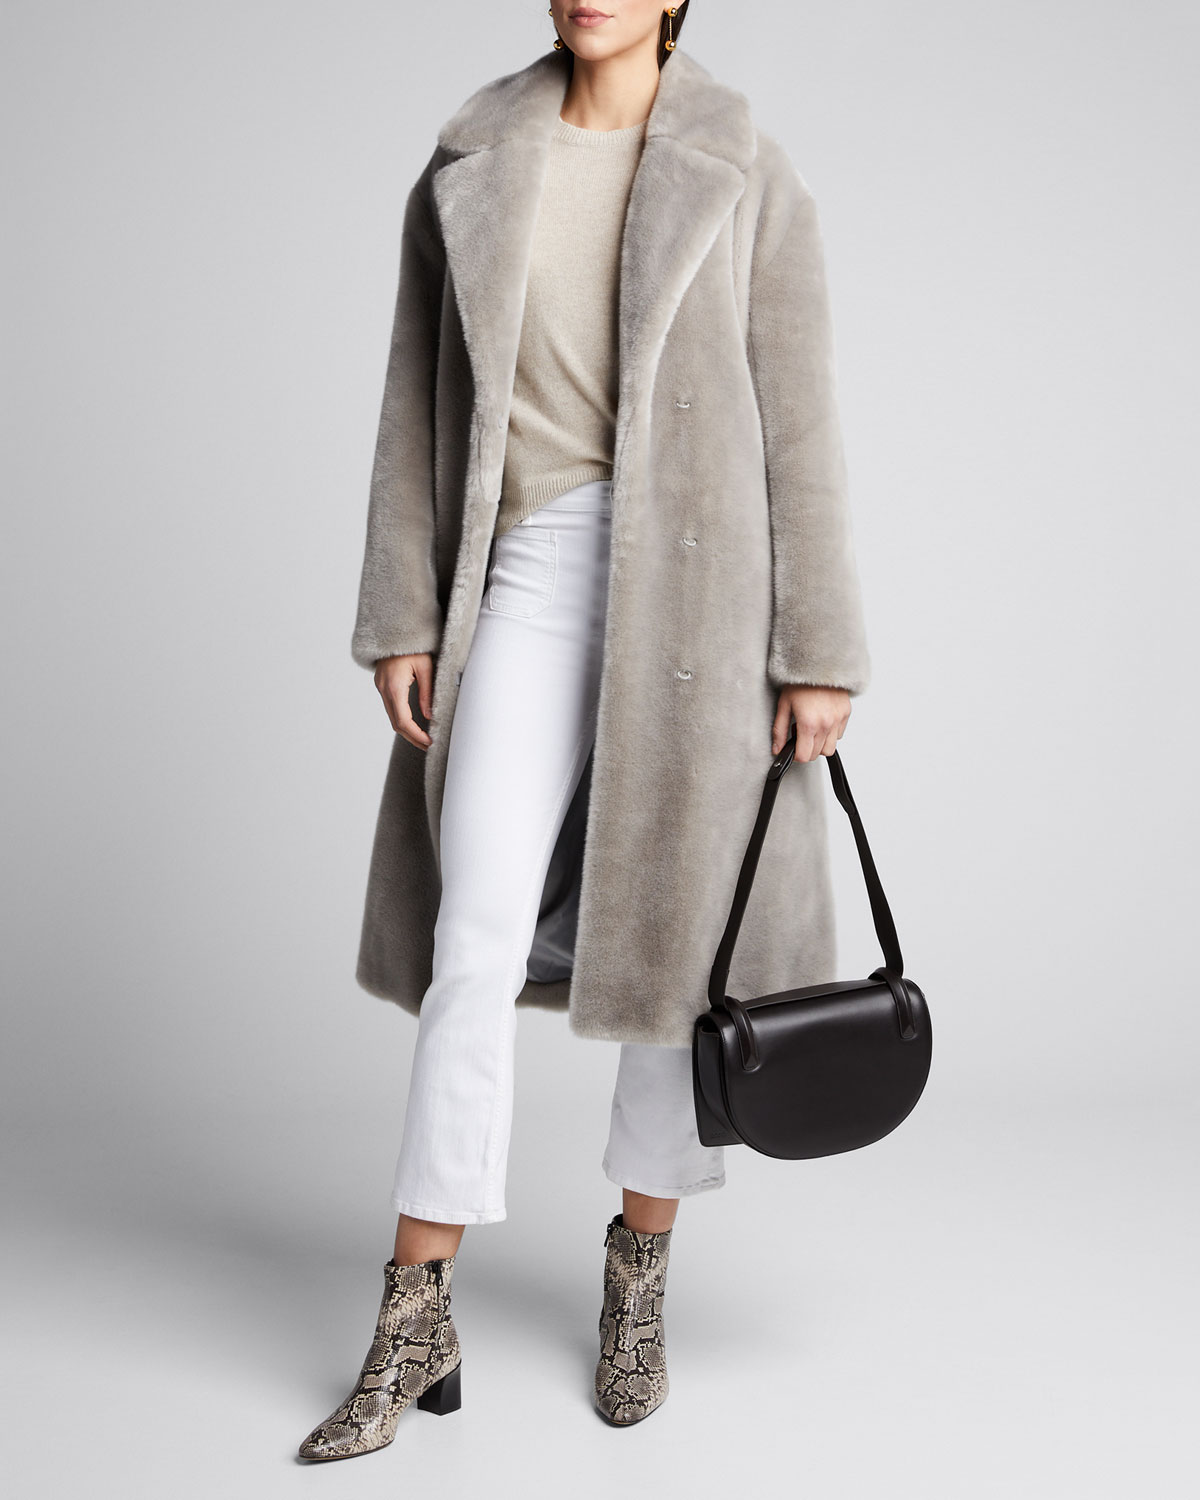 Tibi Coats LUXE FAUX-FUR OVERSIZED TRENCH COAT